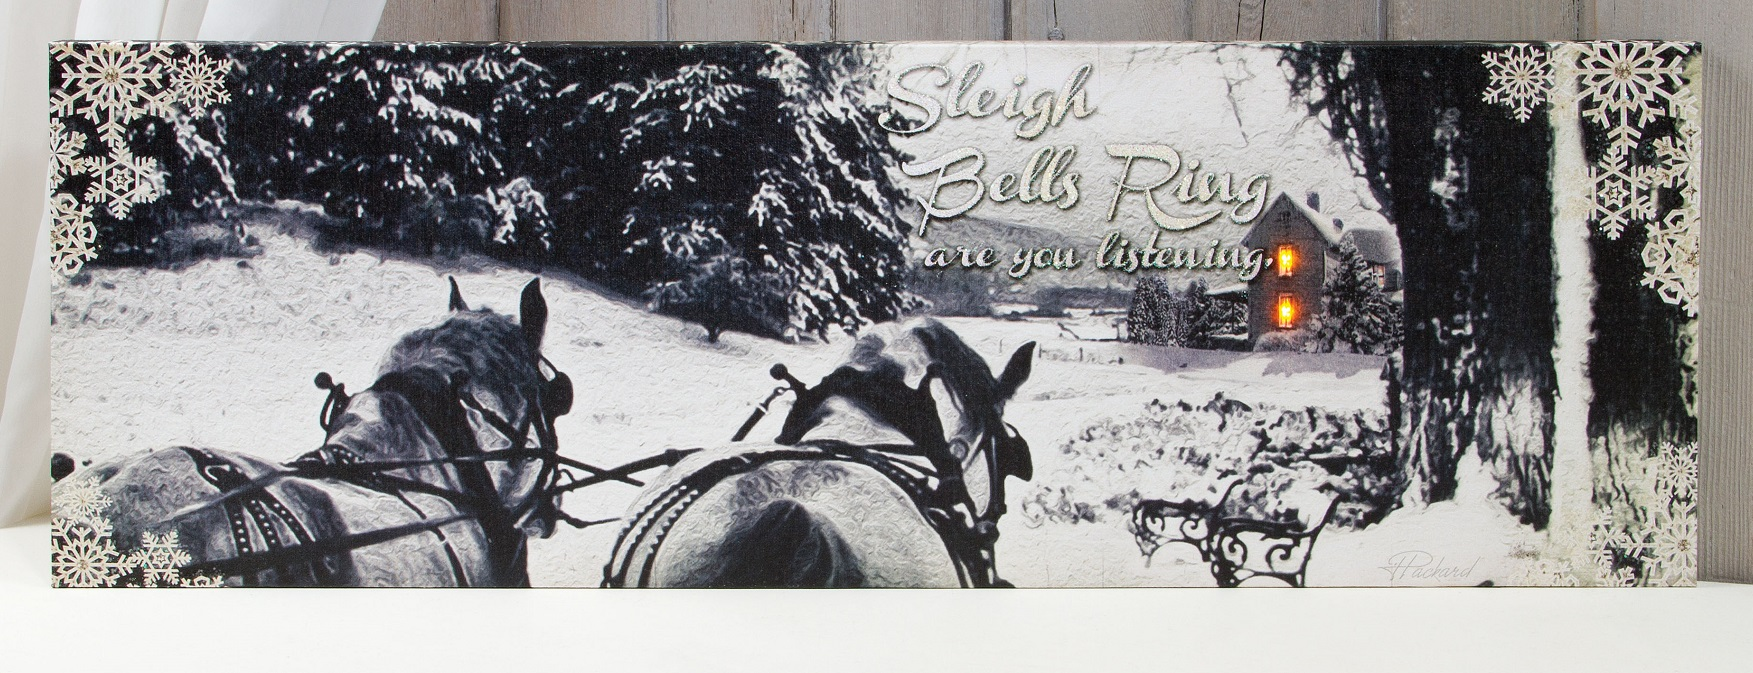 Radiance Lighted Canvas by Ohio Wholesale Sleigh Bells ring